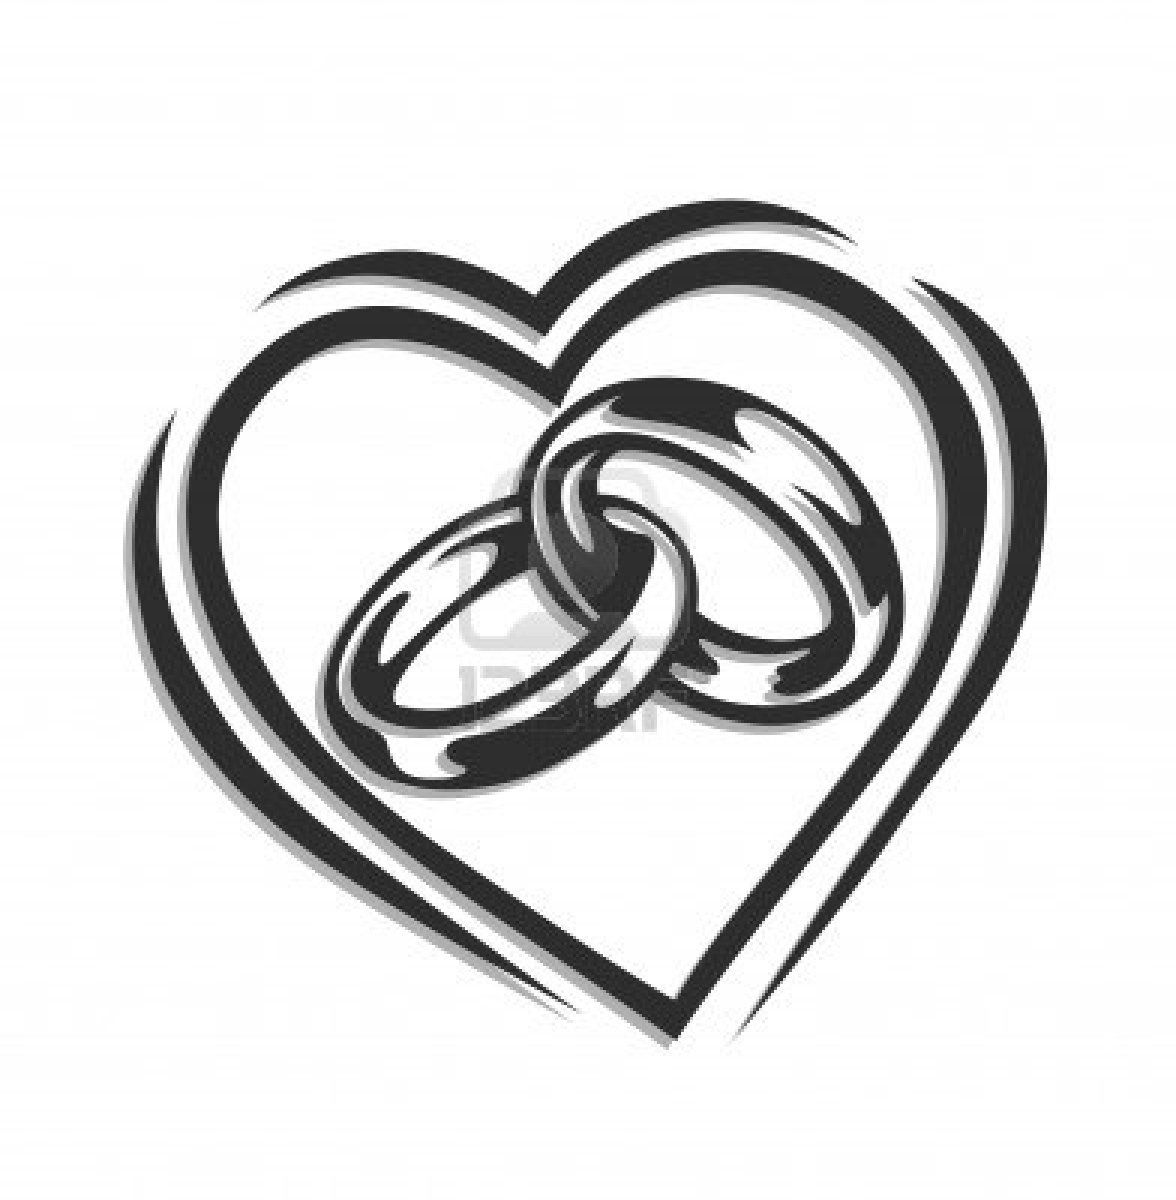 Image result for free clipart wedding rings intertwined in.